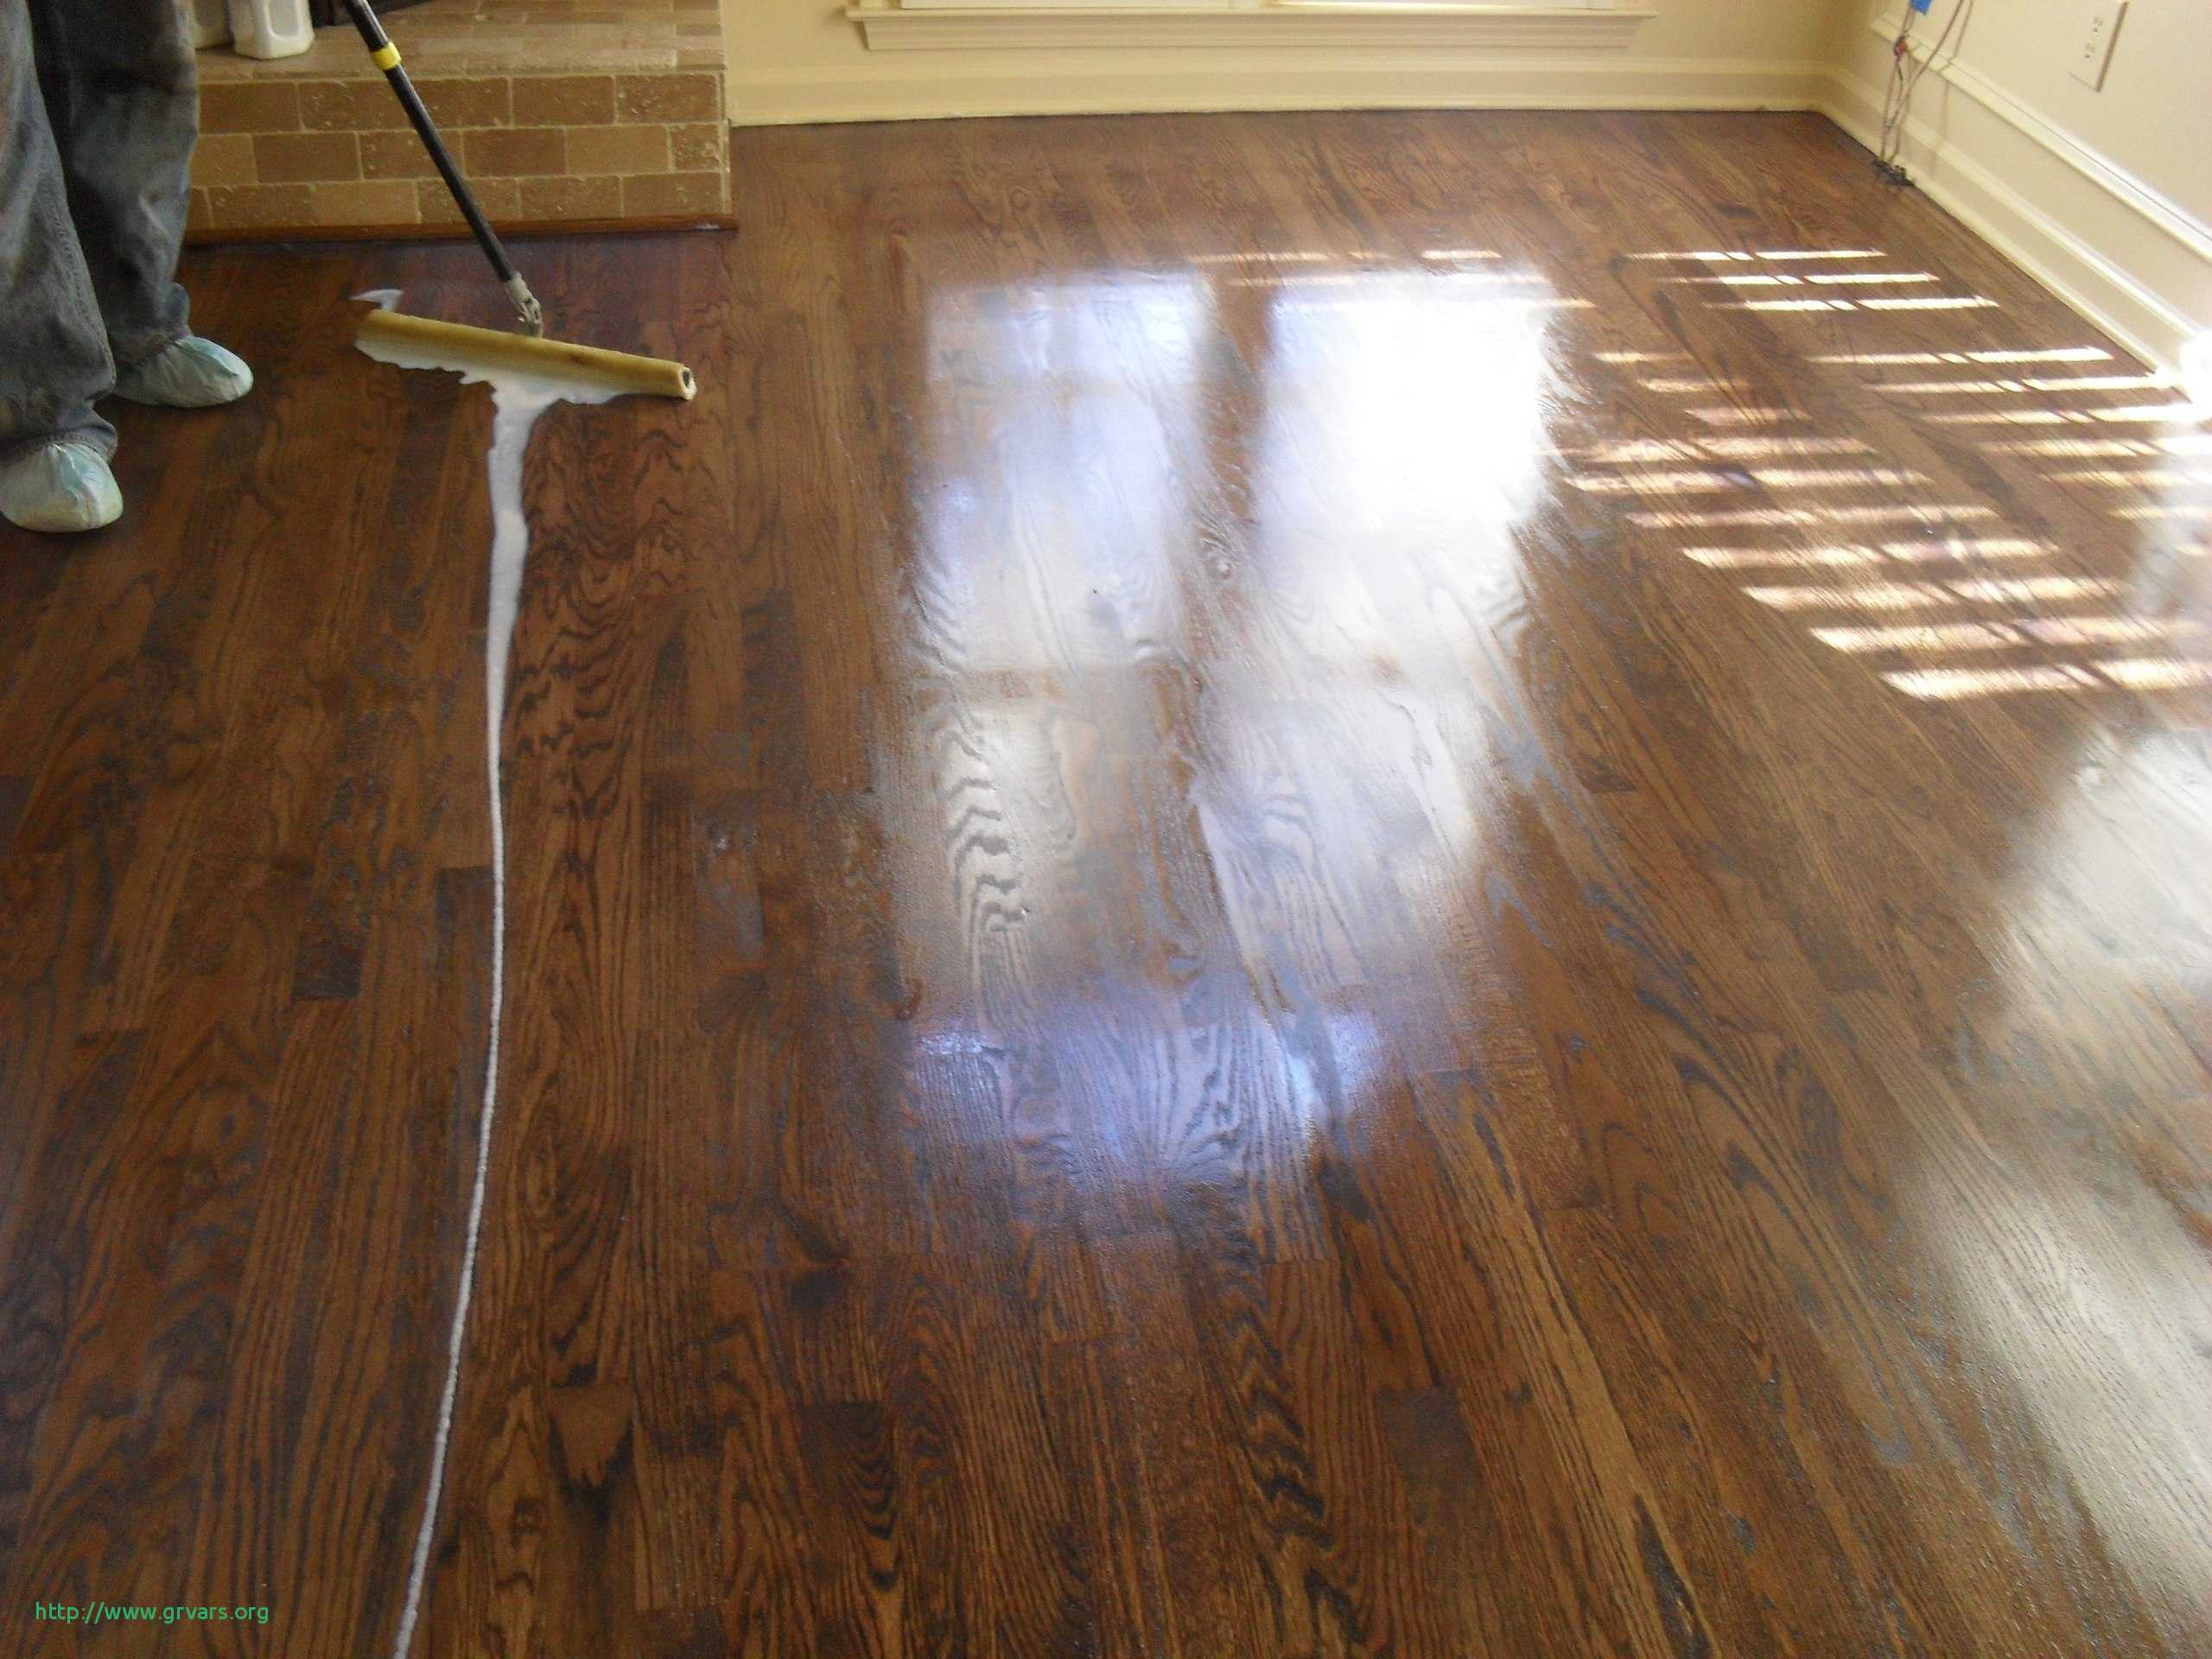 Hardwood Floor Refinishing Process Of Image Number 6563 From Post Restoring Old Hardwood Floors Will Intended for Nouveau Hardwood Floors Yourself Ideas Restoring Old Will Inspirant Redo without Sanding Podemosleganes Lovely Refinishingod Pet